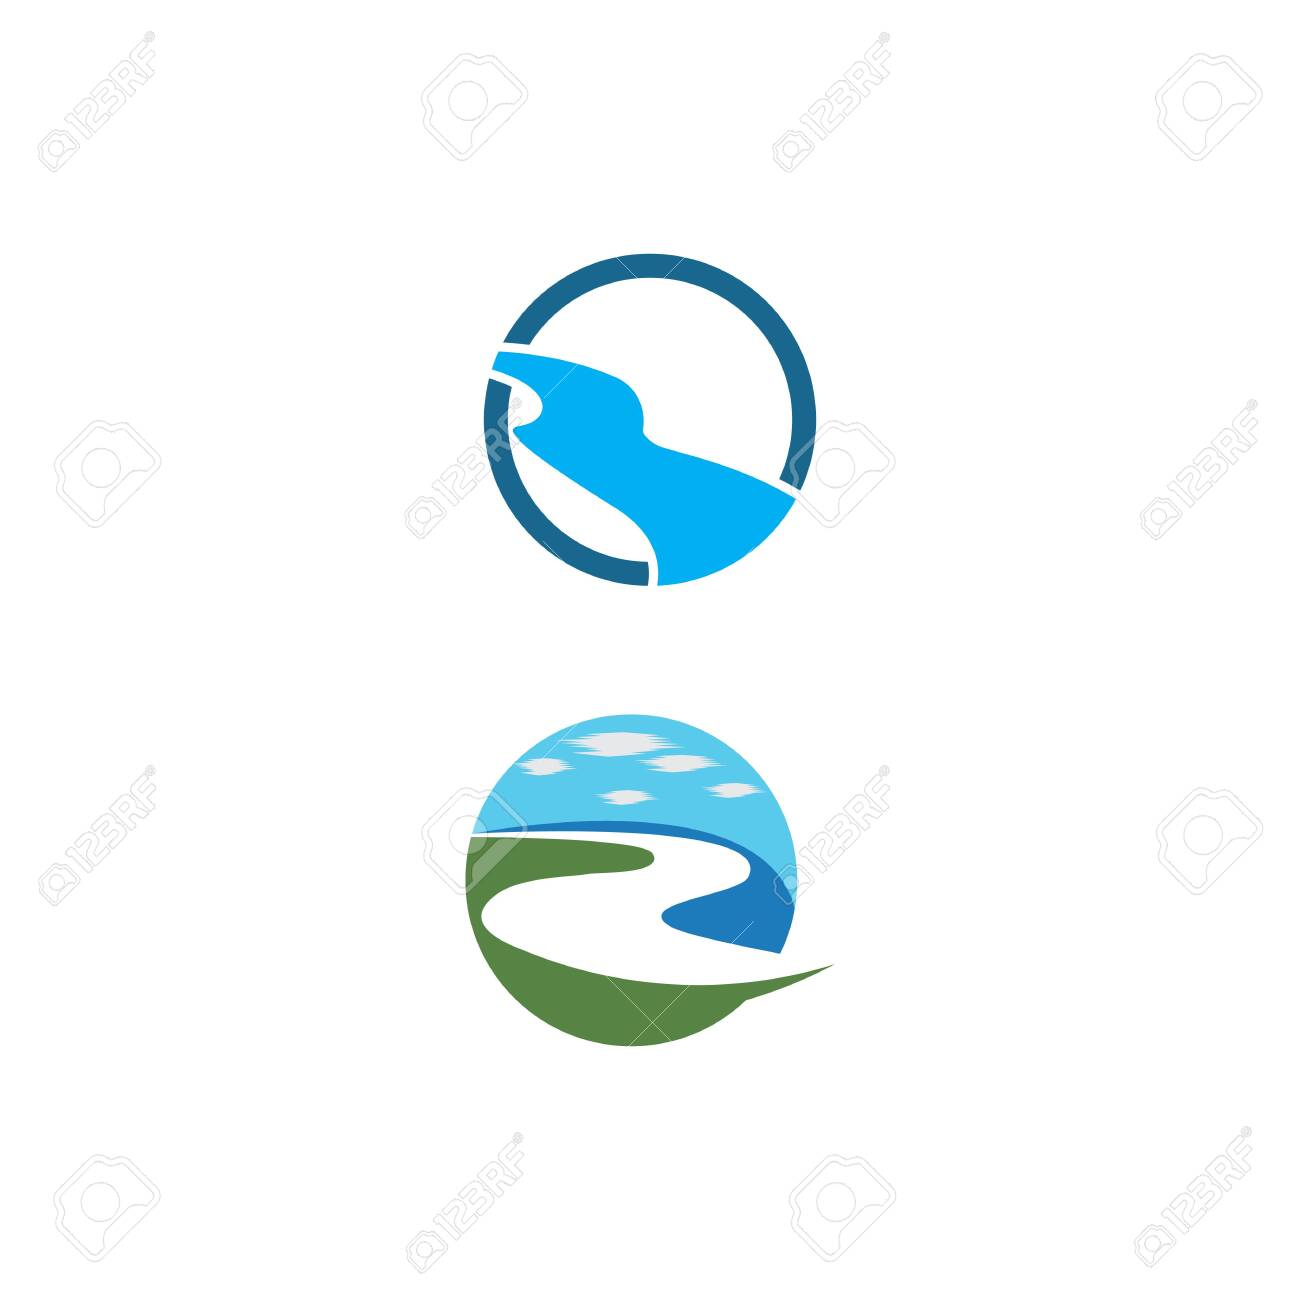 river vector icon illustration design royalty free cliparts vectors and stock illustration image 140195973 123rf com